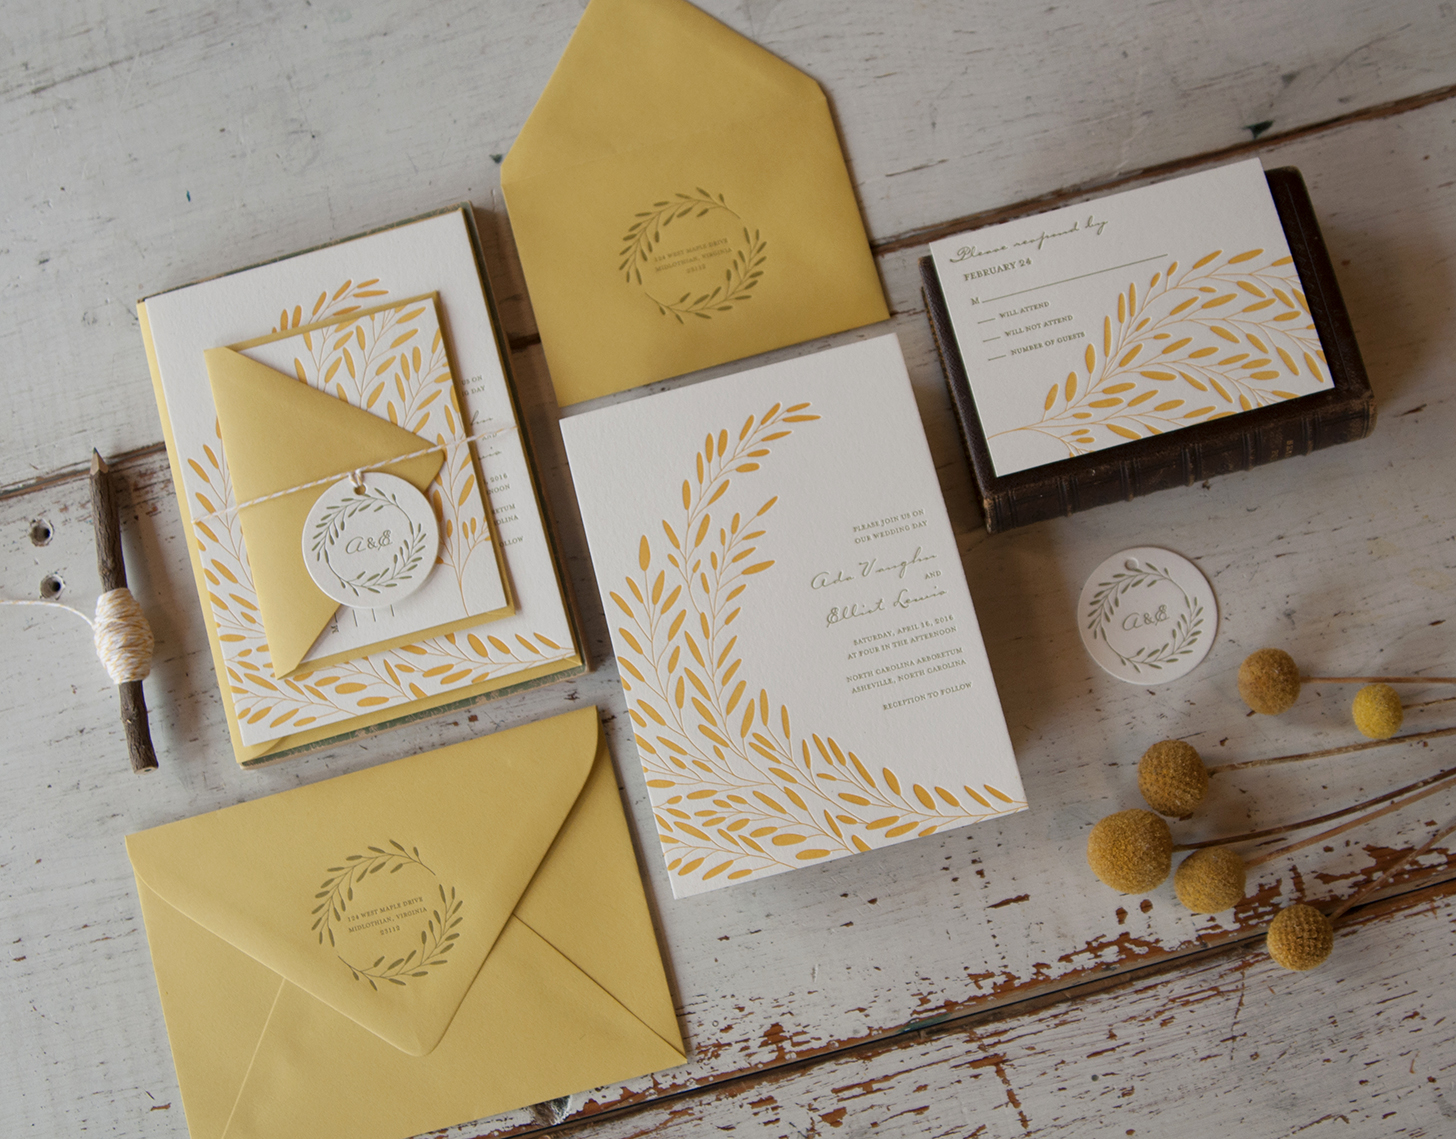 Ada & Elliot: Letterpress Printed invitation suite with custom illustration.